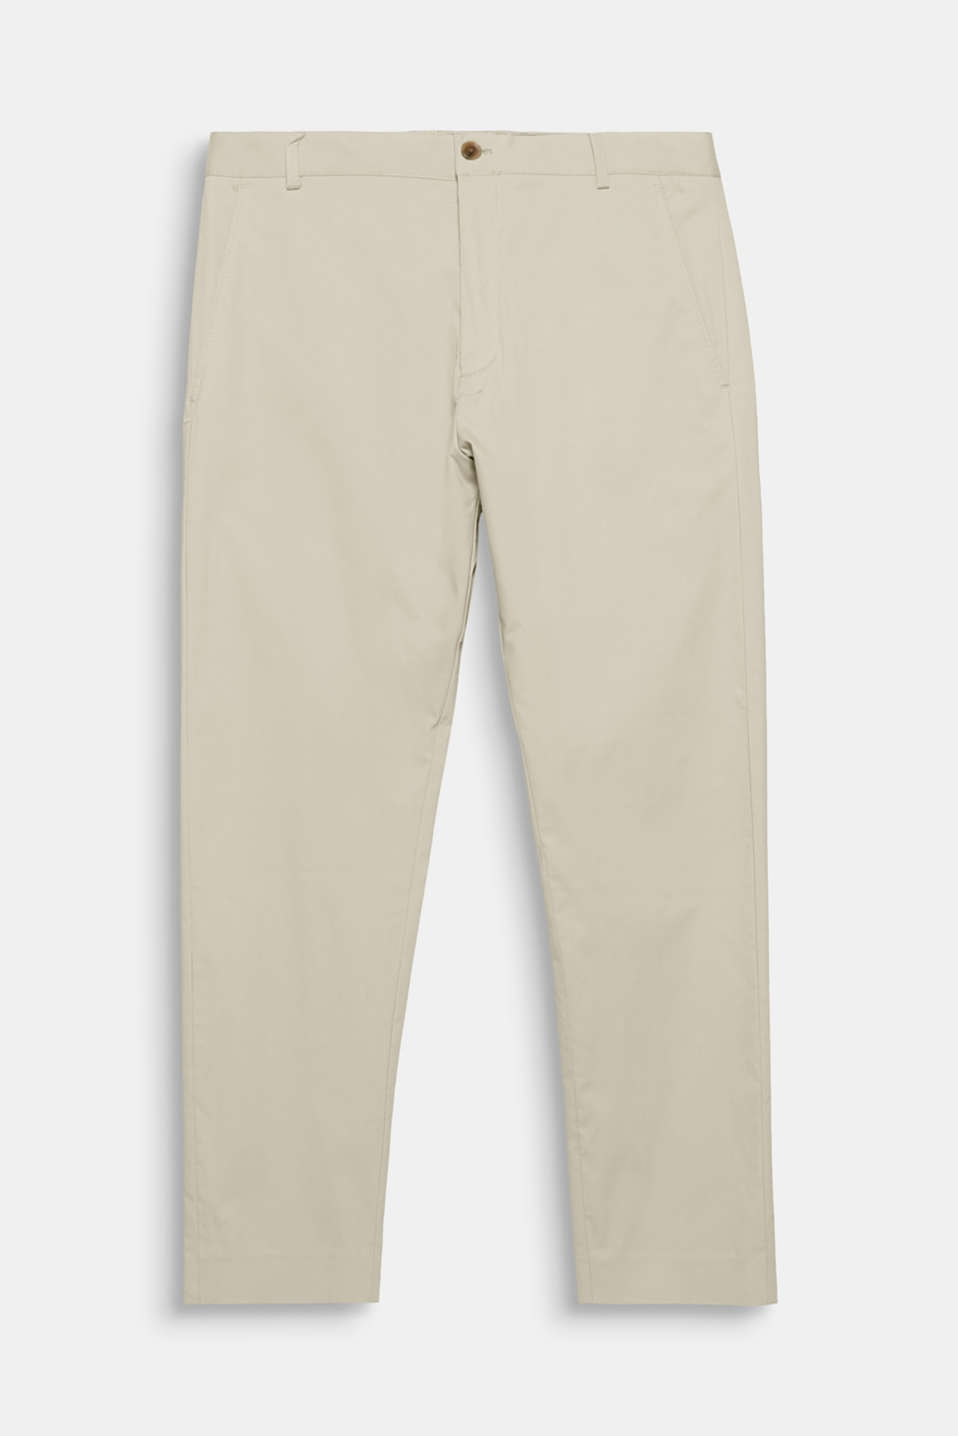 Perfect for your sporty suit look! The lightweight cotton fabric with stretch for comfort and the modern fit give these suit trousers a straightforward summer look.